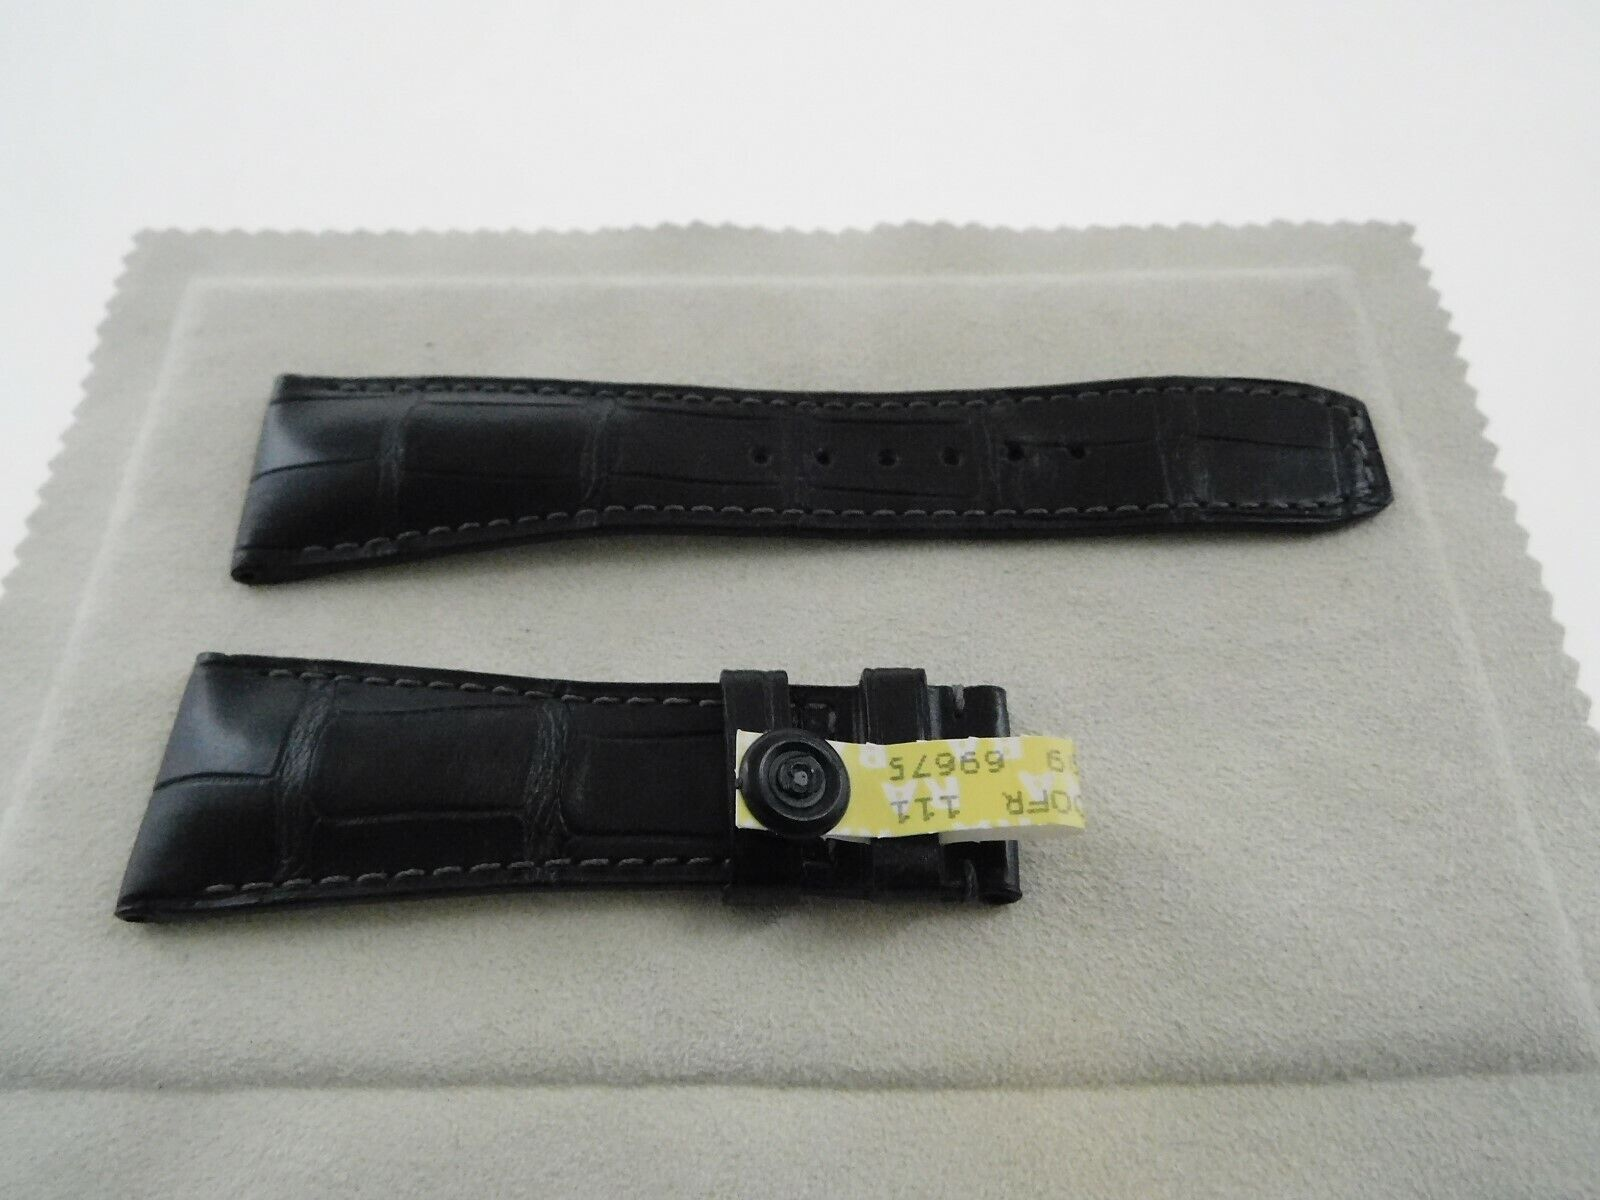 Neu  Baume & Mercier Original echt Louisiana ALLIGATOR Armband schwarz 26-20mm